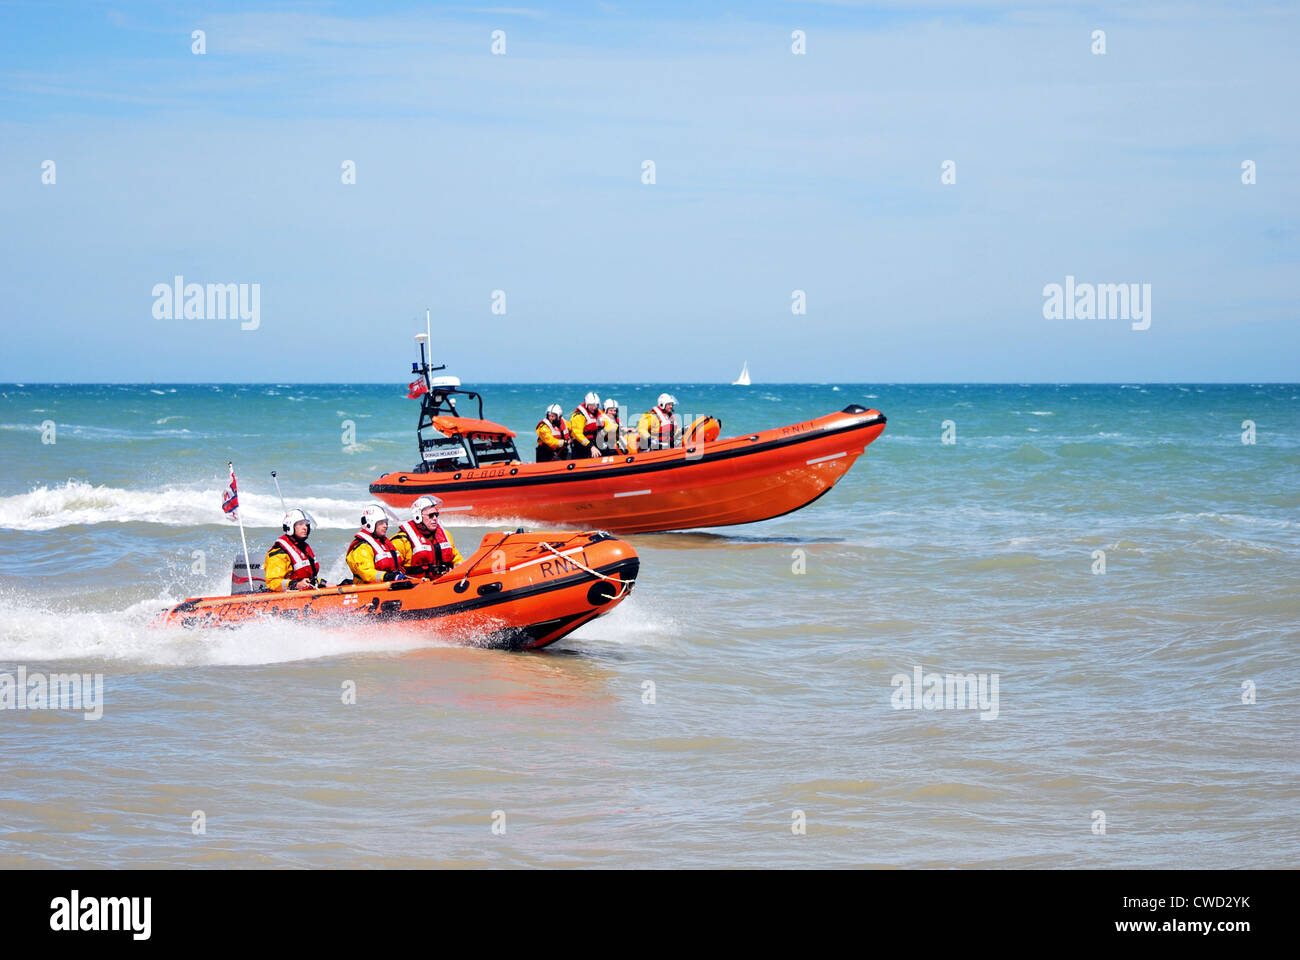 Both Walmer RNLI lifeboats at sea off the Kent coast during the lifeboat stations open day in 2012. - Stock Image